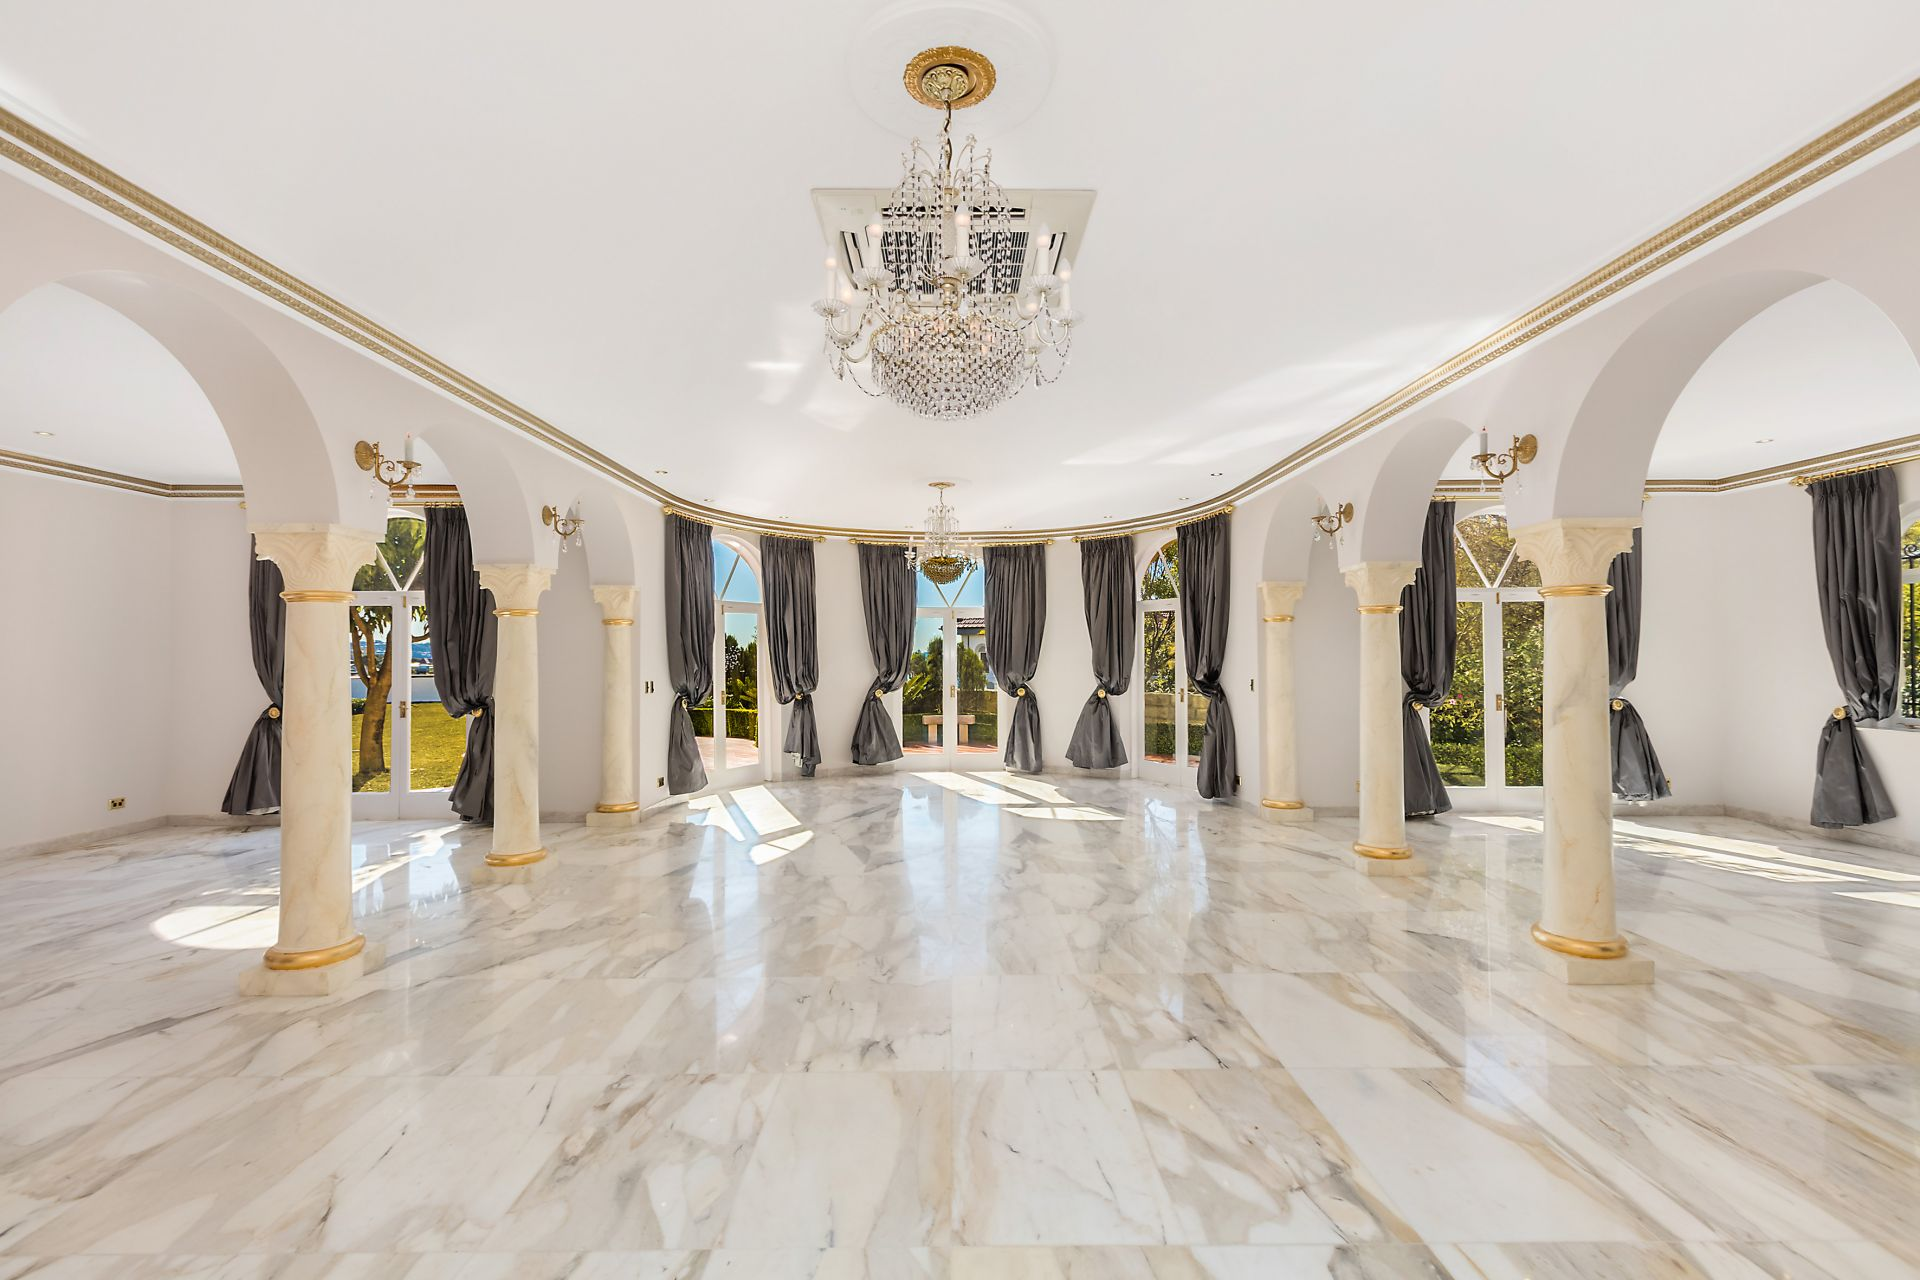 Alcooringa, a magnificent 1930s estate overlooking Sydney Harbour, has a number of fashion-friendly features, including a grand ballroom with Italian chandeliers and marble floors.